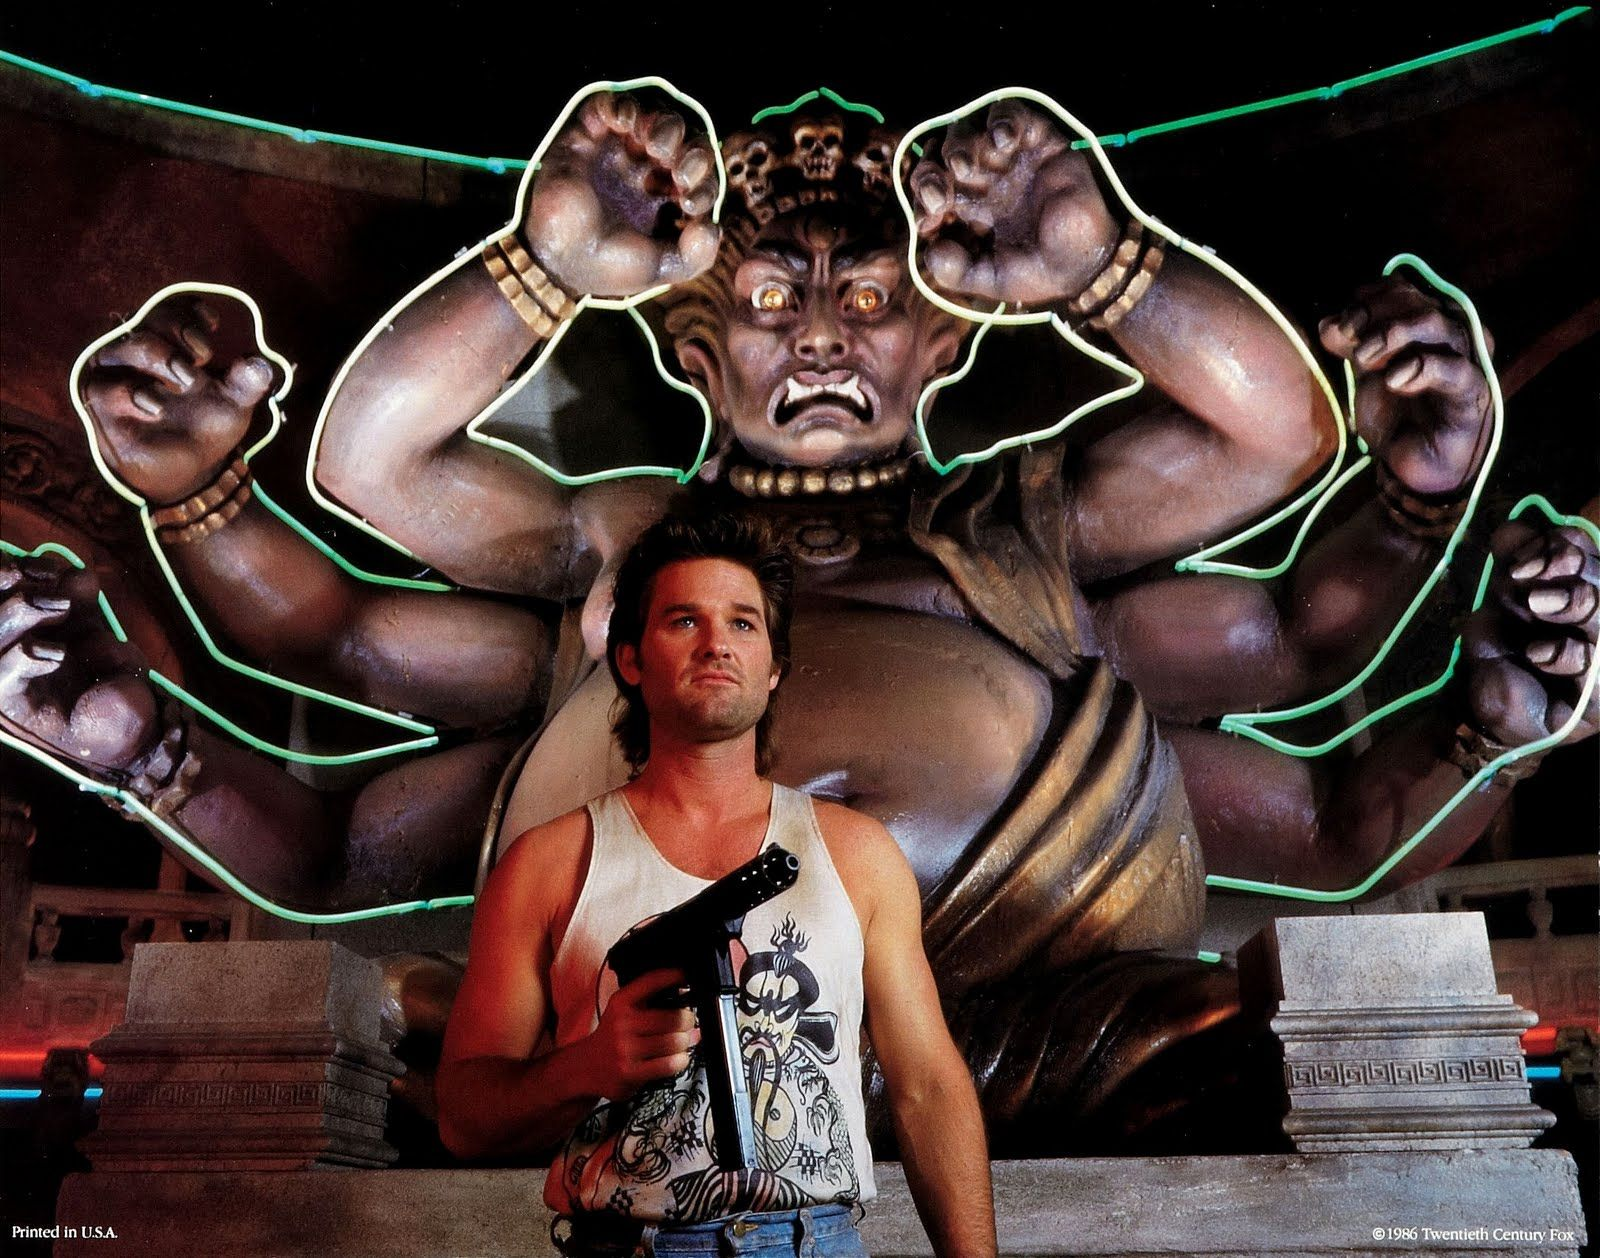 Big Trouble in Little China""